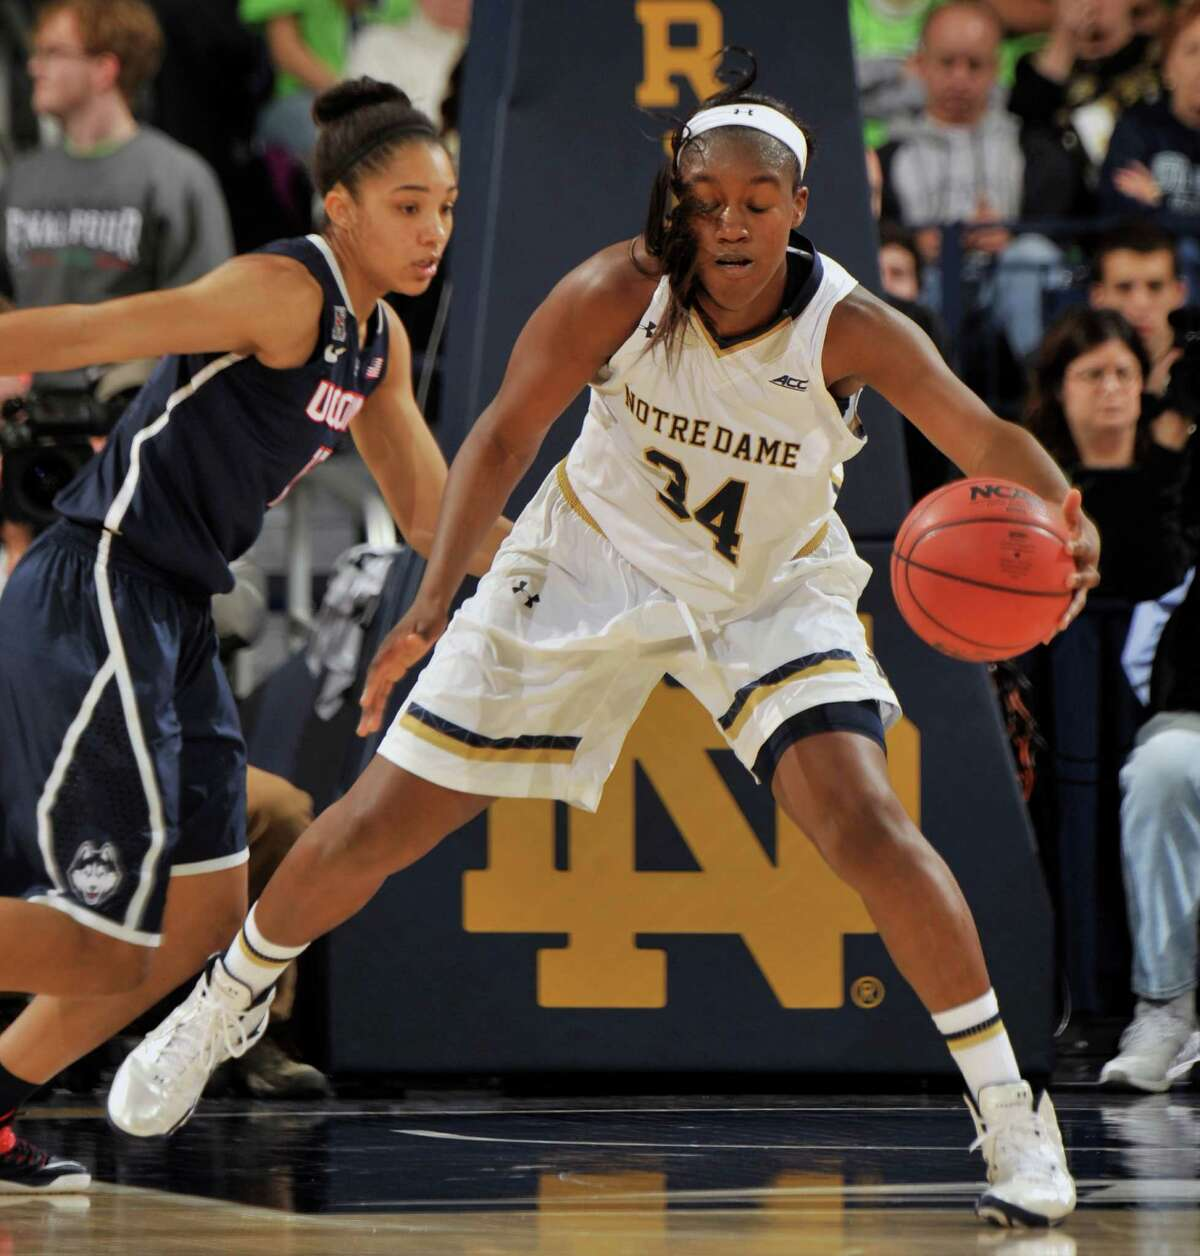 Notre Dame forward Markisha Wright, right, grabs a pass around Connecticut guard Moriah Jefferson in first half of an NCAA college basketball game, Saturday Dec. 6, 2014, in South Bend, Ind.